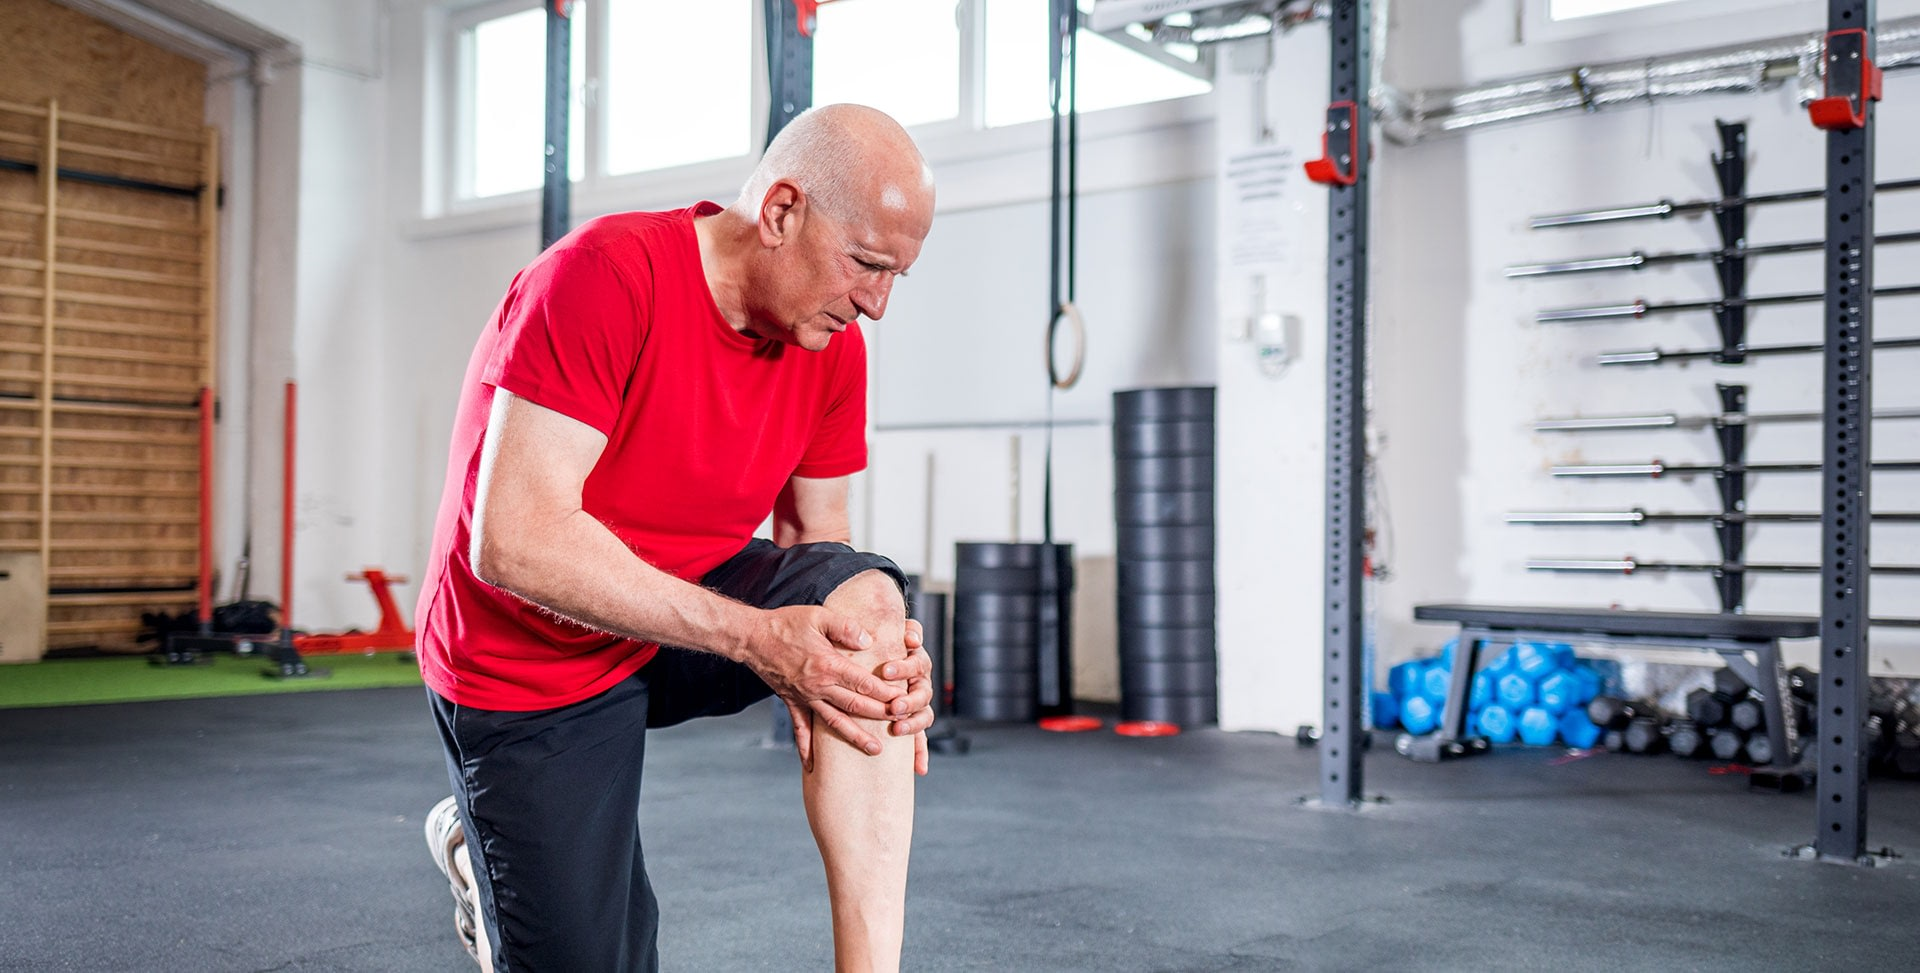 older man with knee pain in gym trying to keep joints healthy